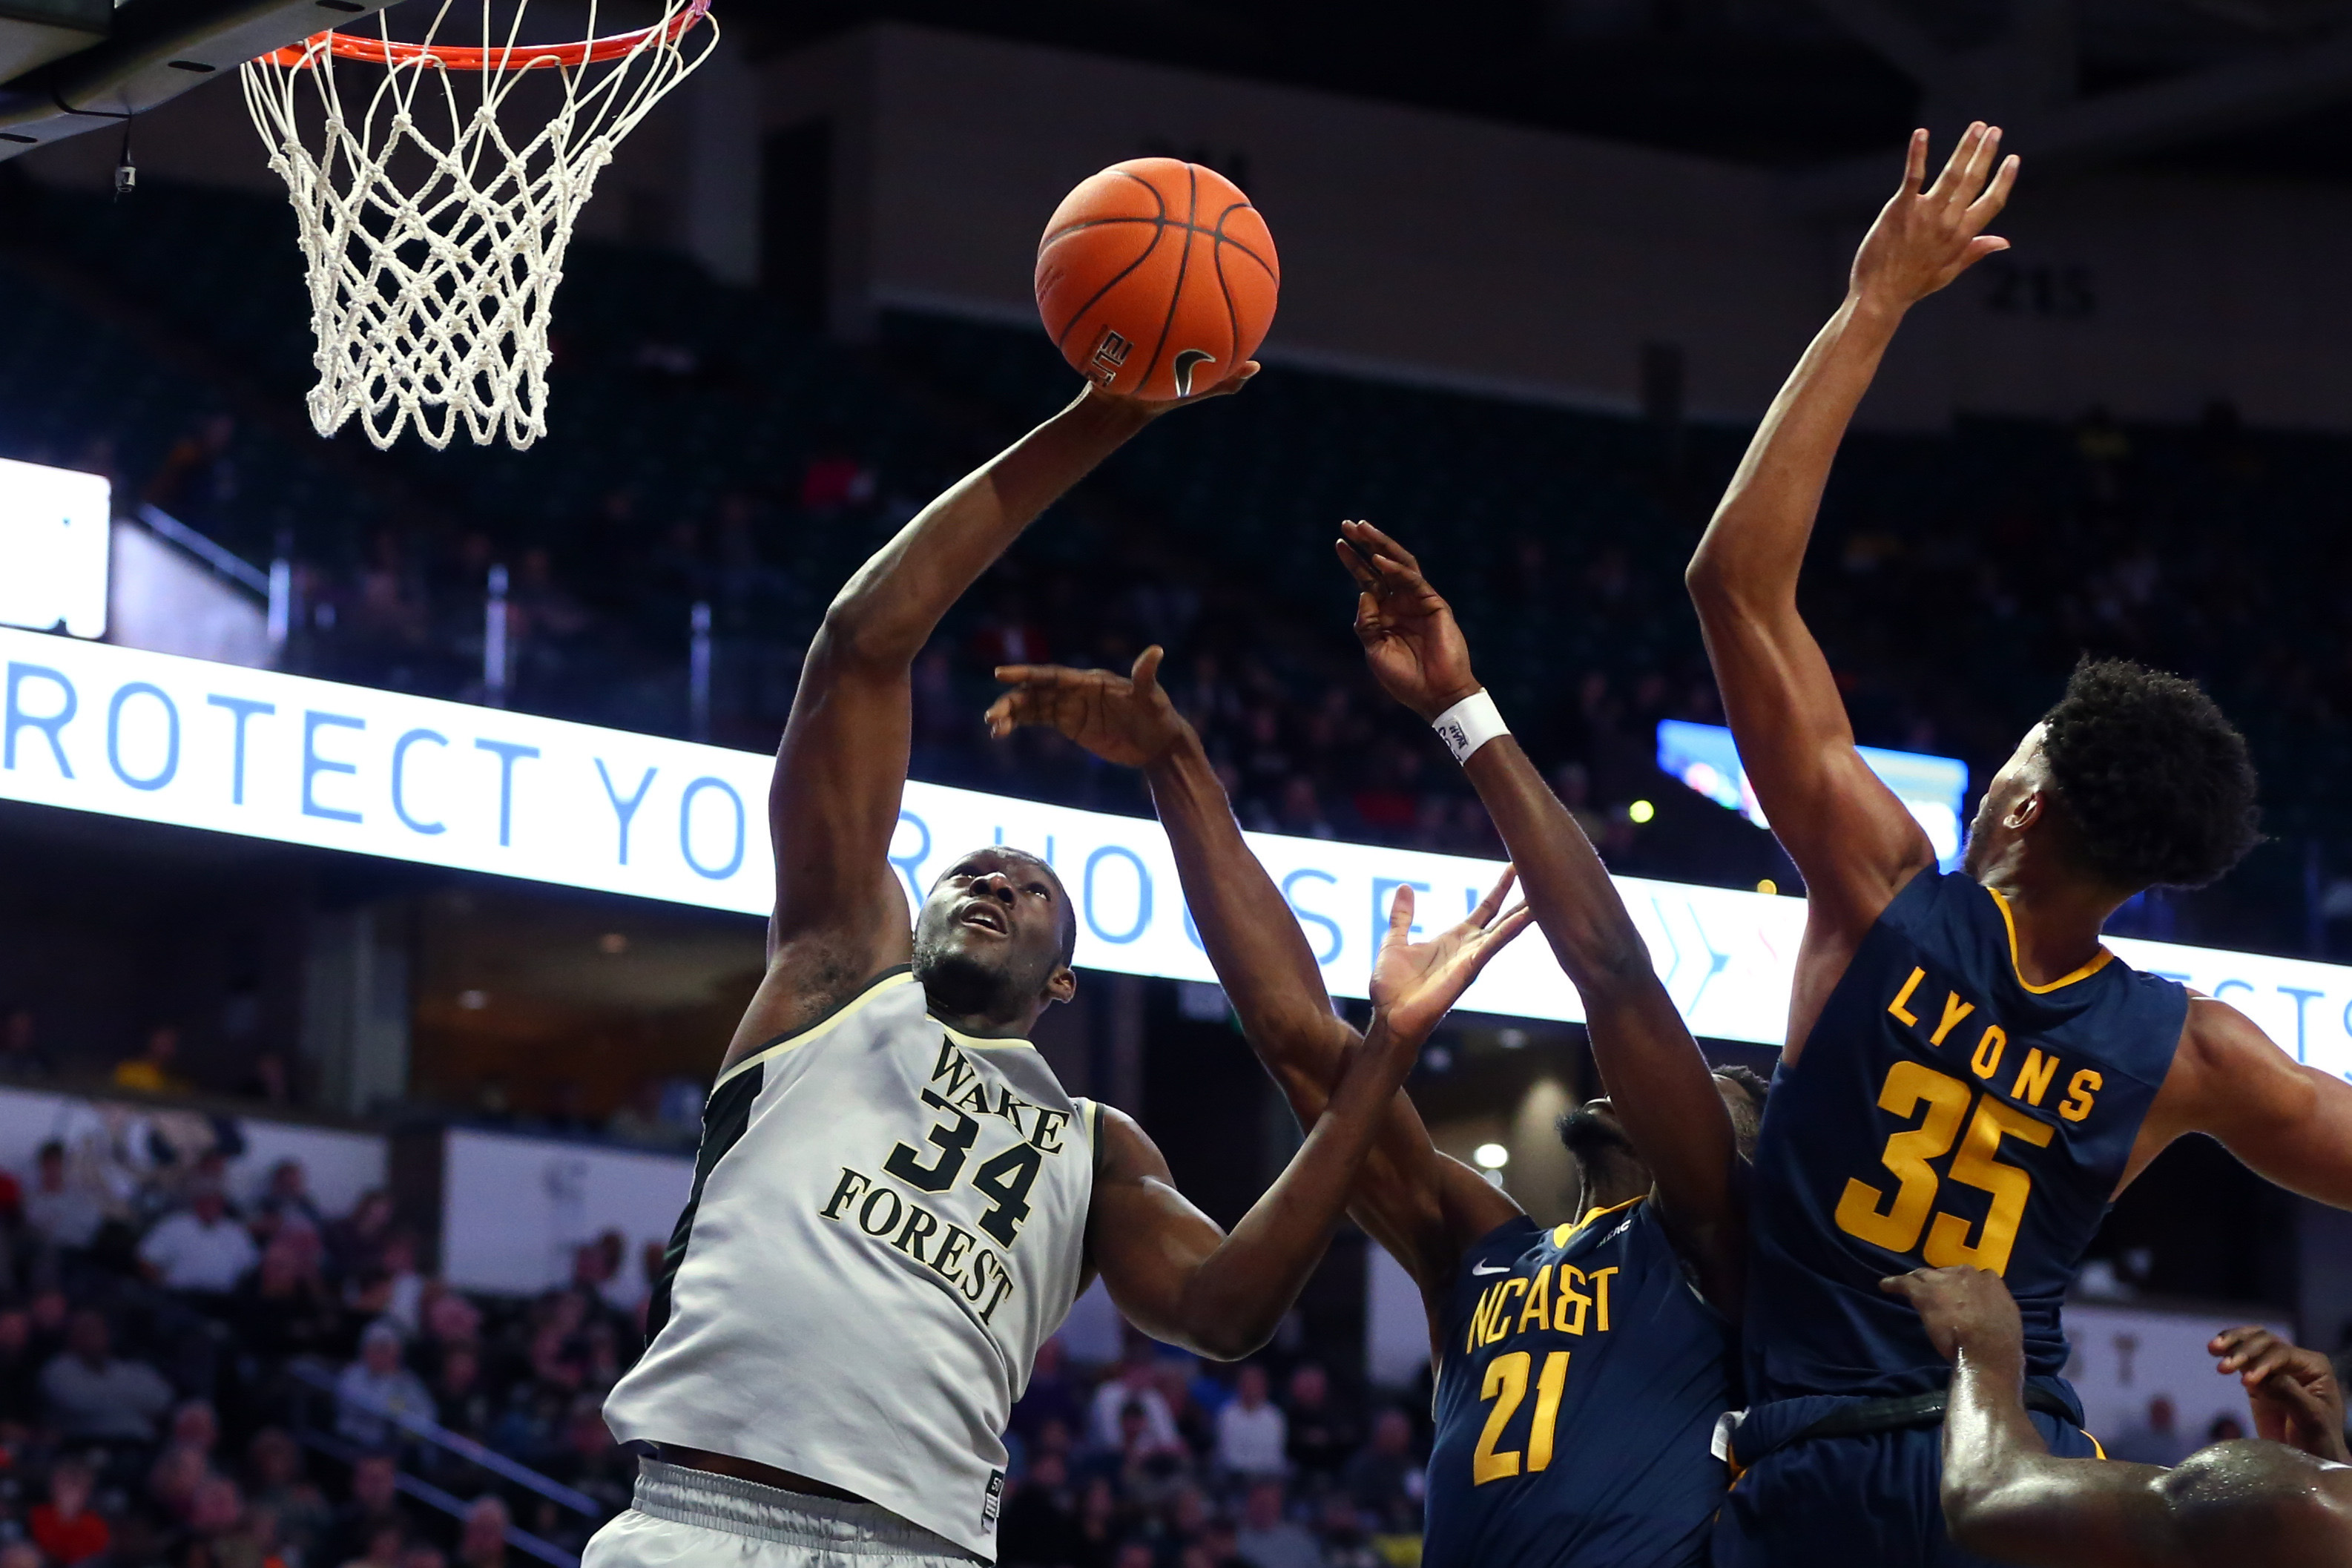 NCAA Basketball: North Carolina A&T at Wake Forest